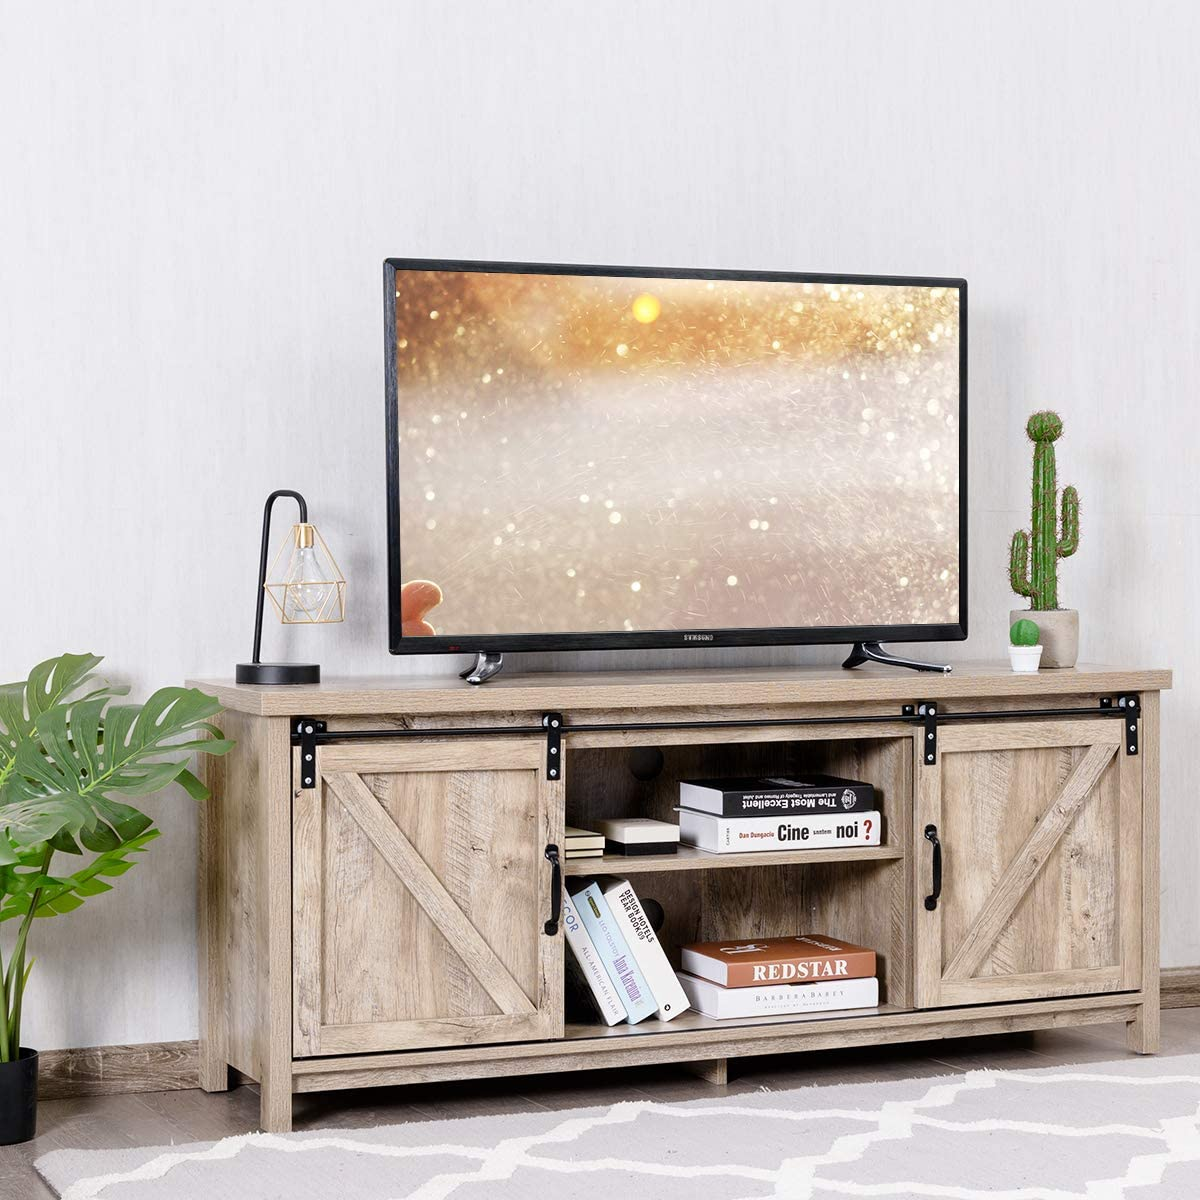 Tangkula Wood TV Stand for 65 Television, TV Ark with Sliding Barn Doors, Wooden TV Cabinet with 2 Center Compartments and 2 Cabinets, Barn Door TV Stand, Natural Design White Oak